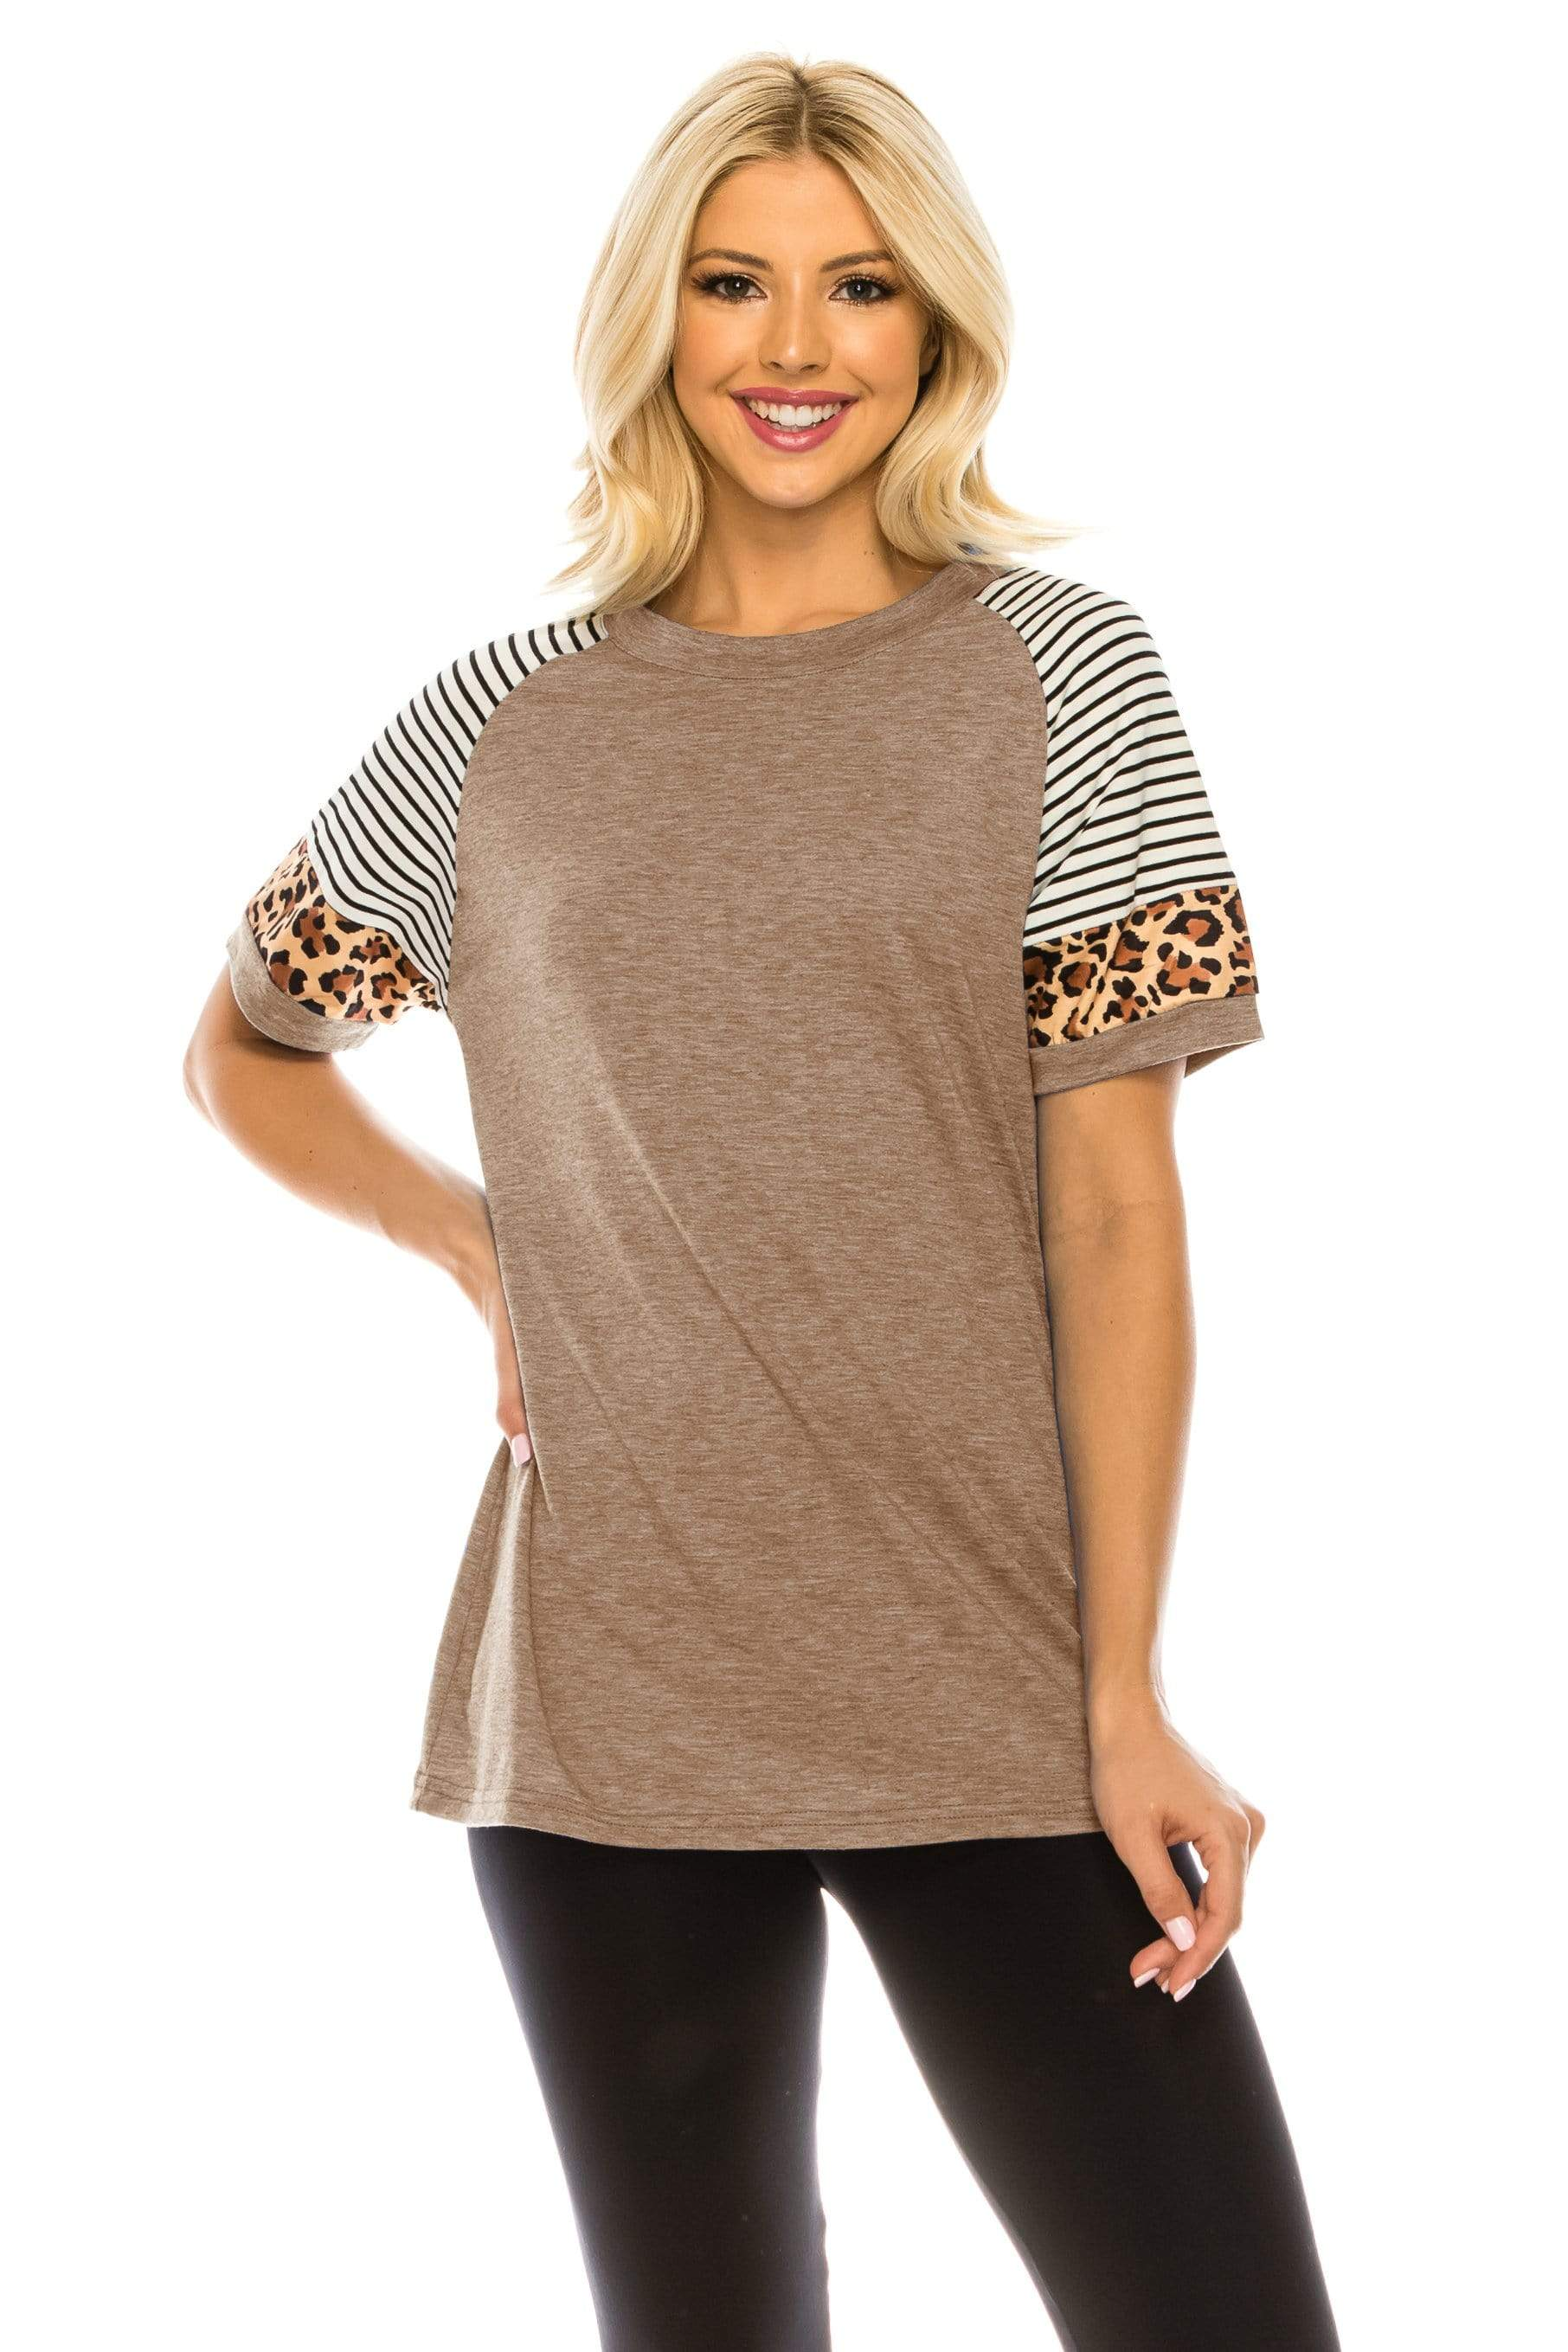 Haute Edition WOMEN'S TOP KHAKI / S Haute Edition Women's Crew Neck Color Block Leopard Top. Plue Sizes Available